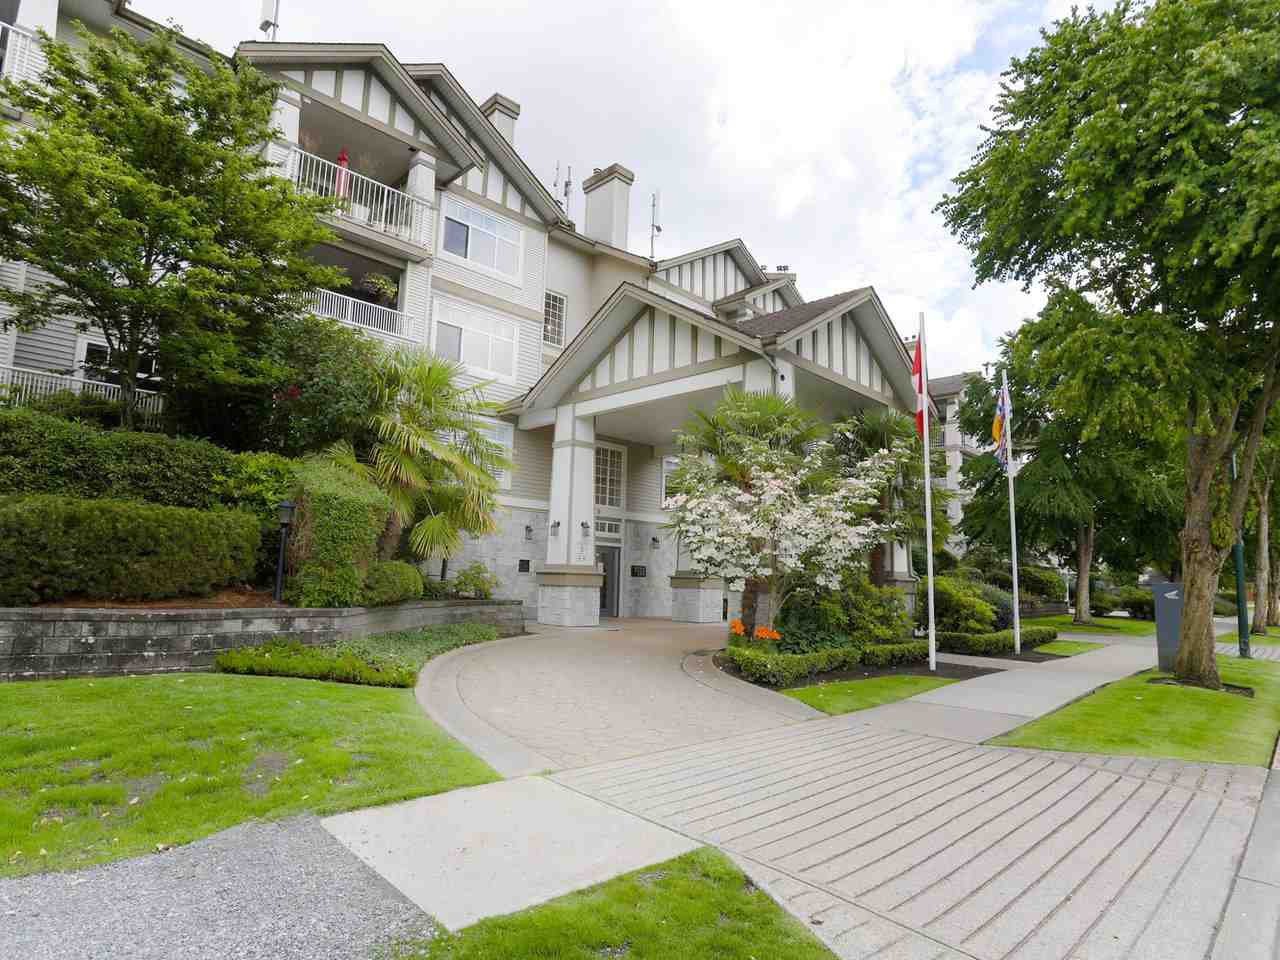 "Main Photo: 215 4770 52A Street in Delta: Delta Manor Condo for sale in ""WESTHAM LANE"" (Ladner)  : MLS®# R2466597"